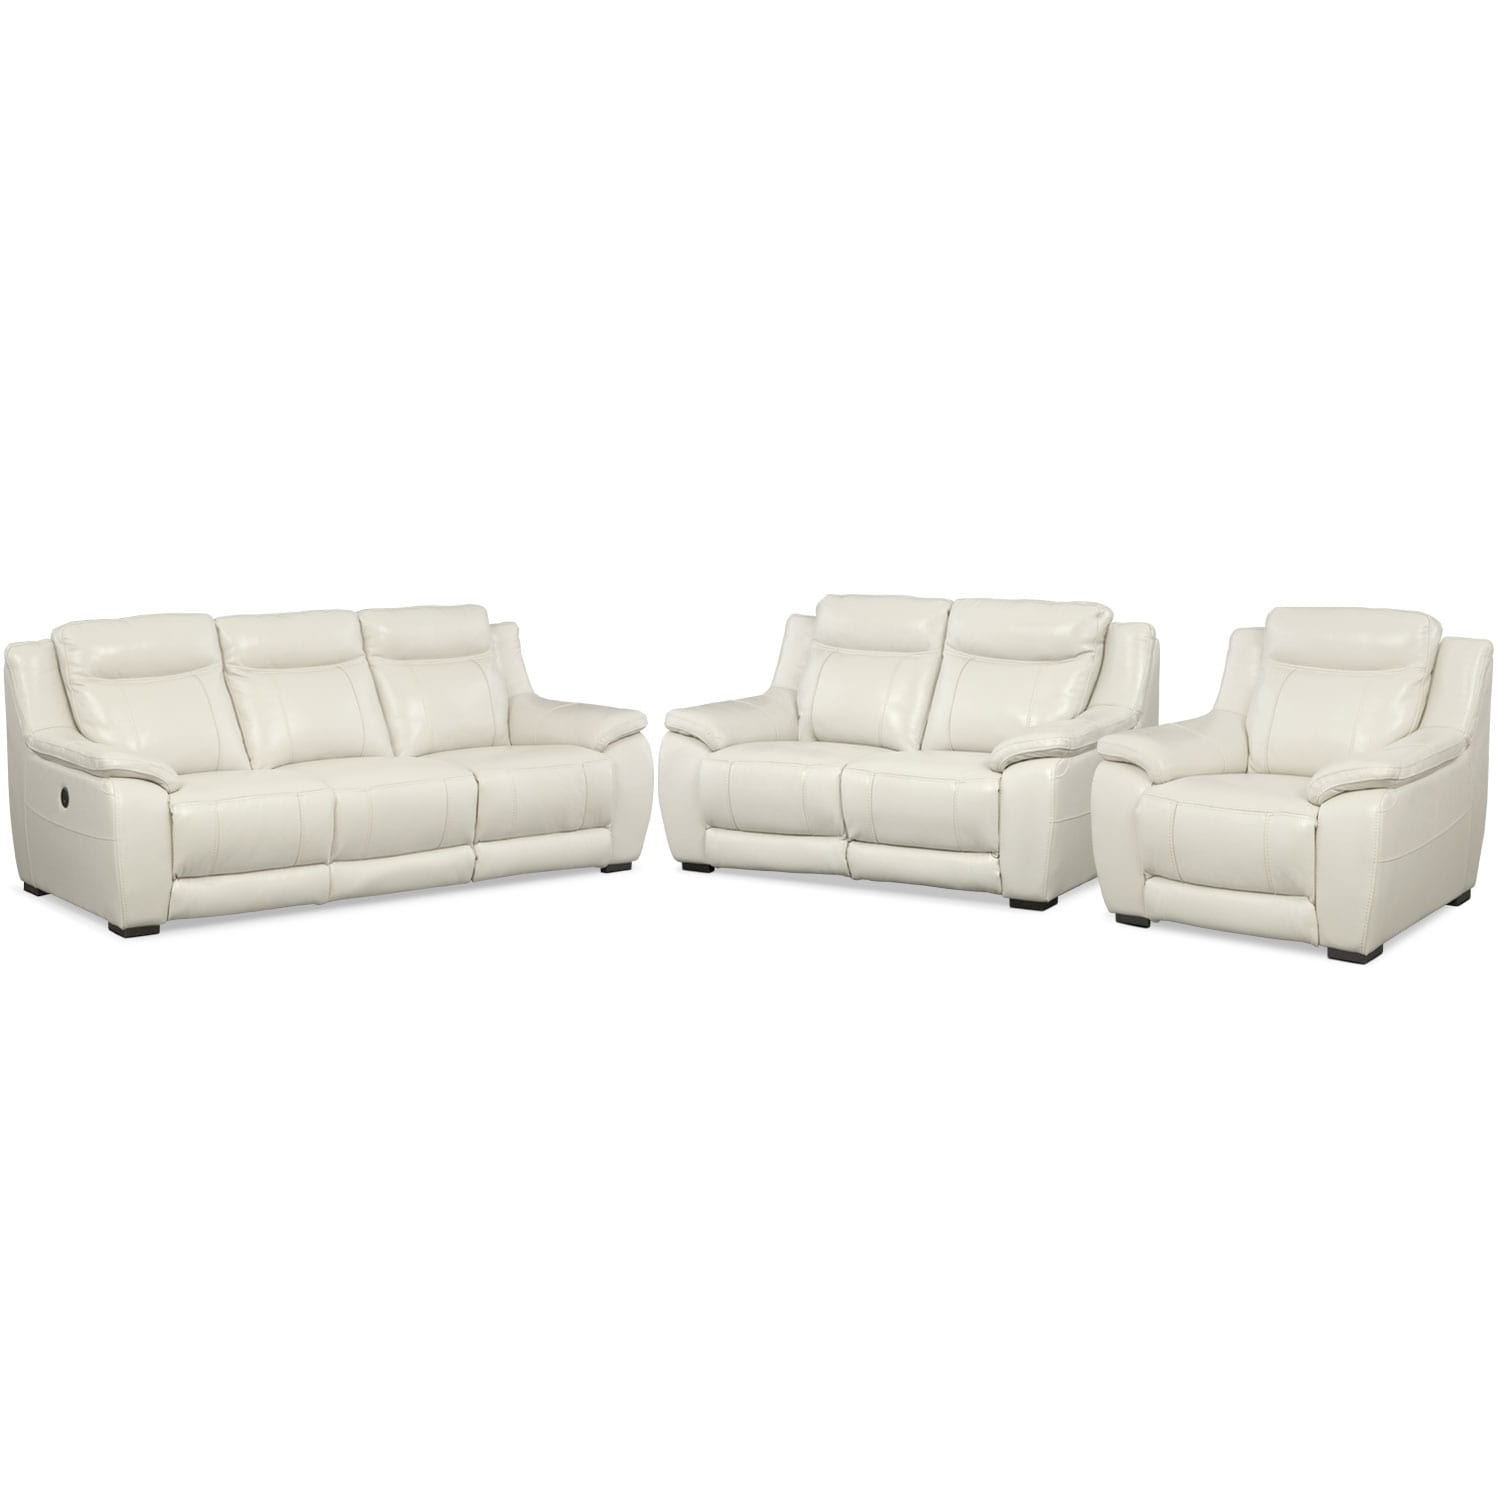 Lido power reclining sofa reclining loveseat and recliner set ivory value city furniture Power loveseat recliner